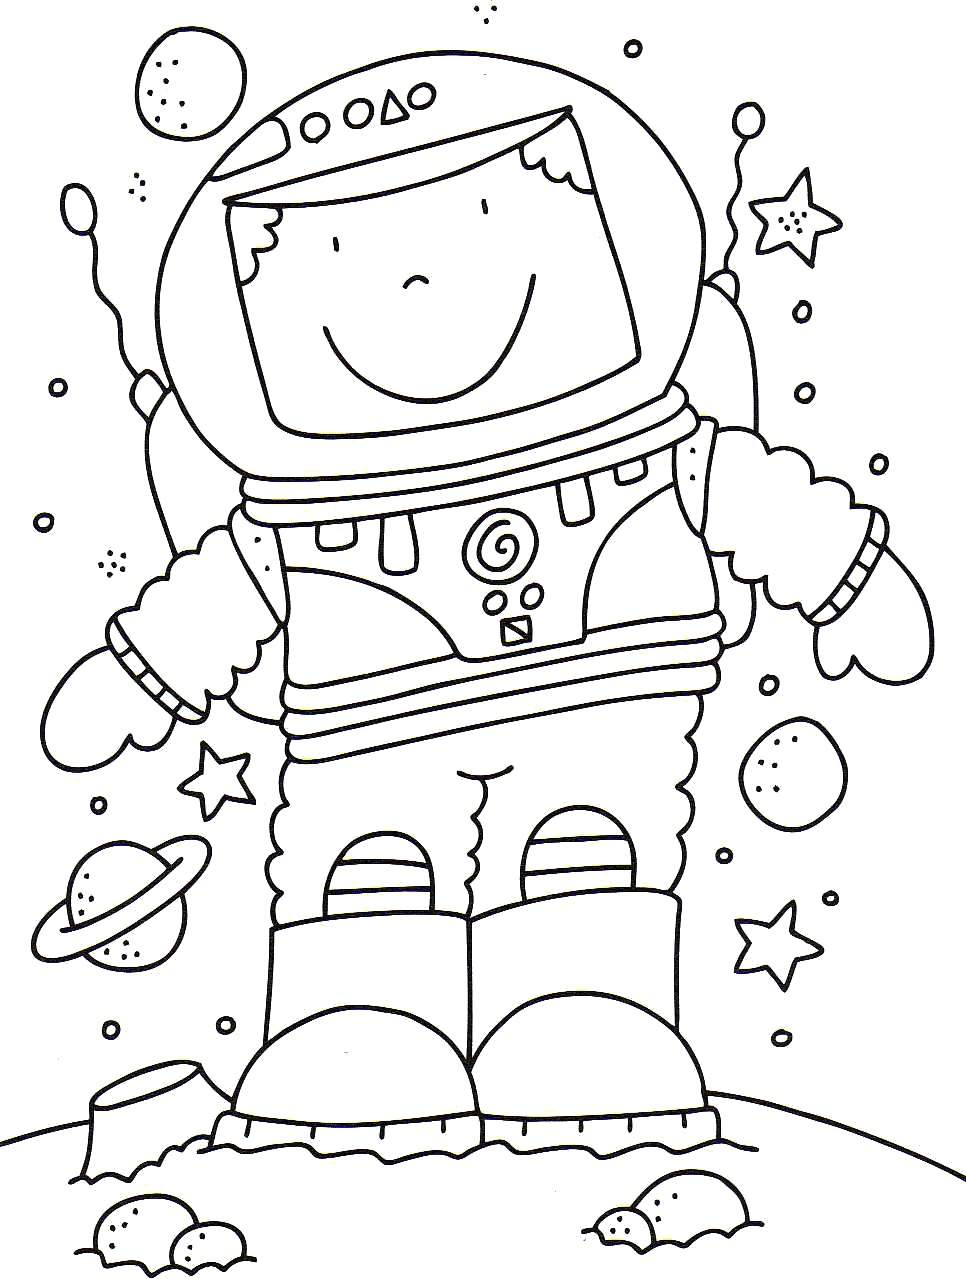 Astronaut coloring pages to download